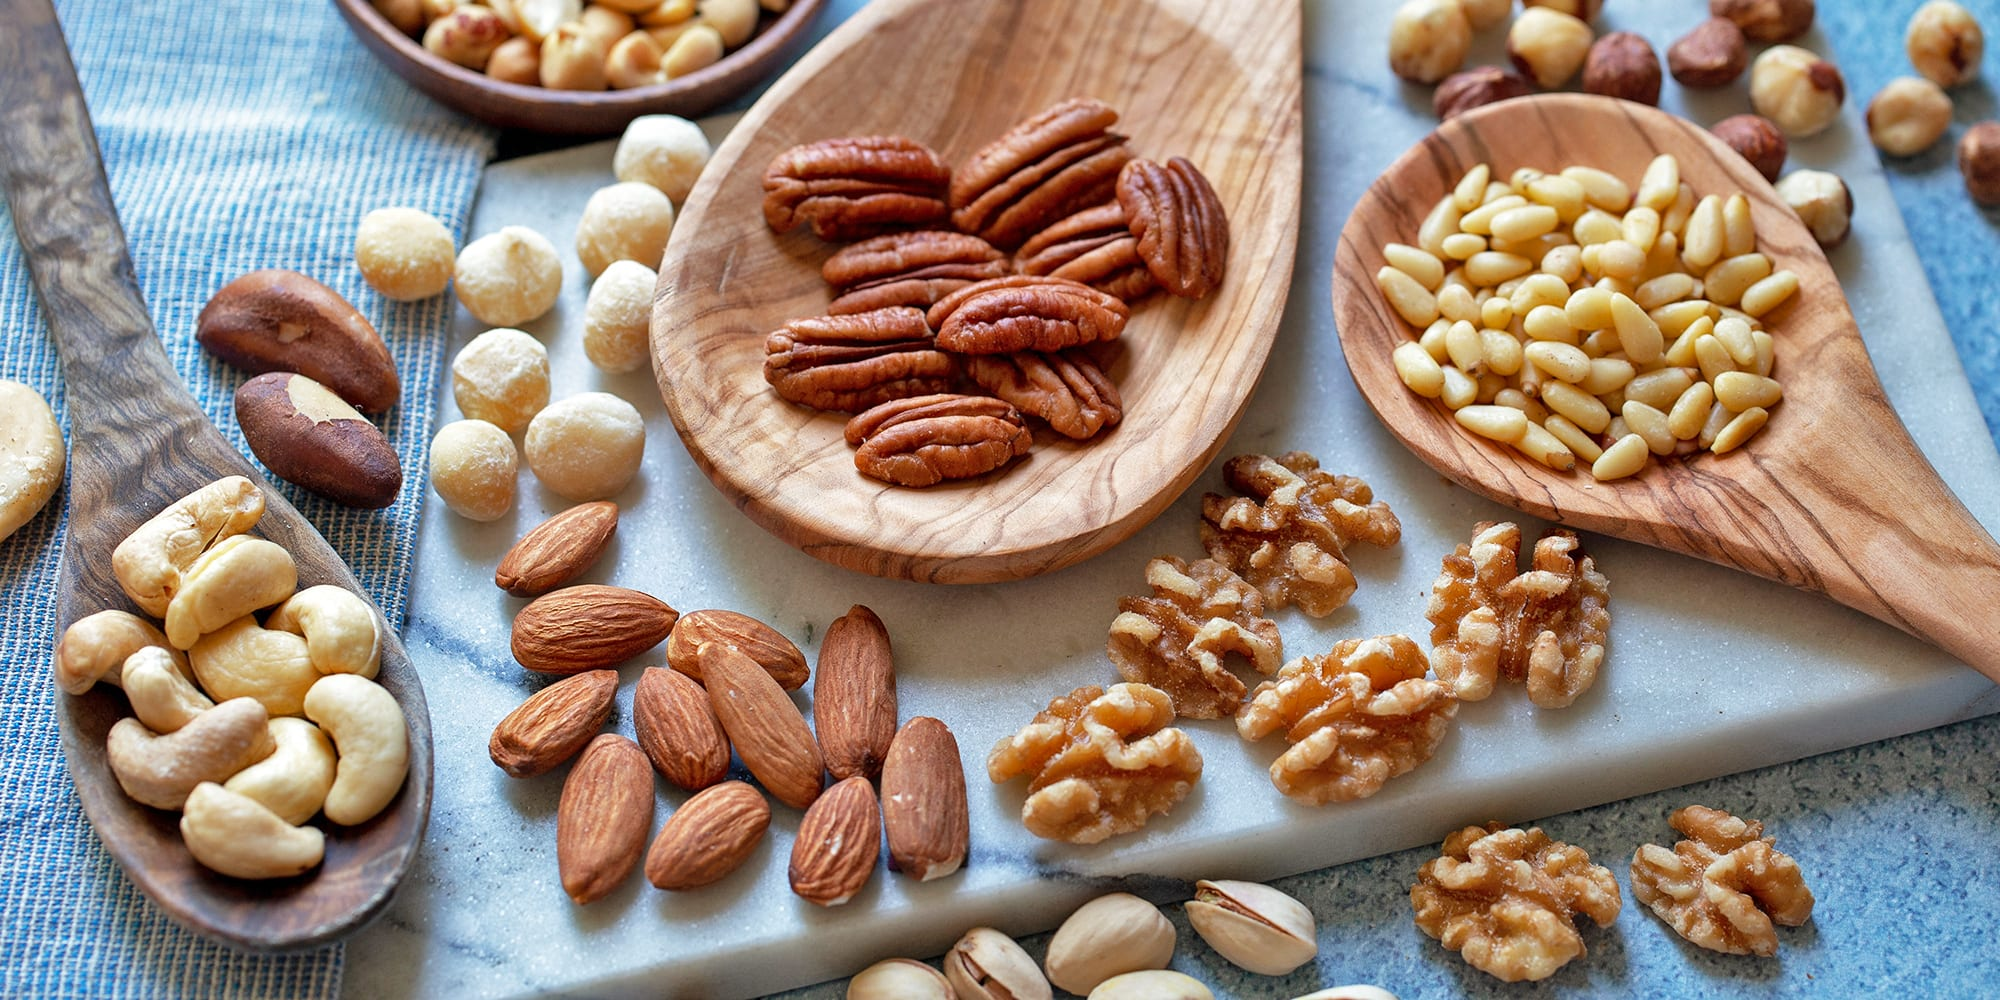 This Is What 100 Calories of Different Kinds of Nuts Looks Like